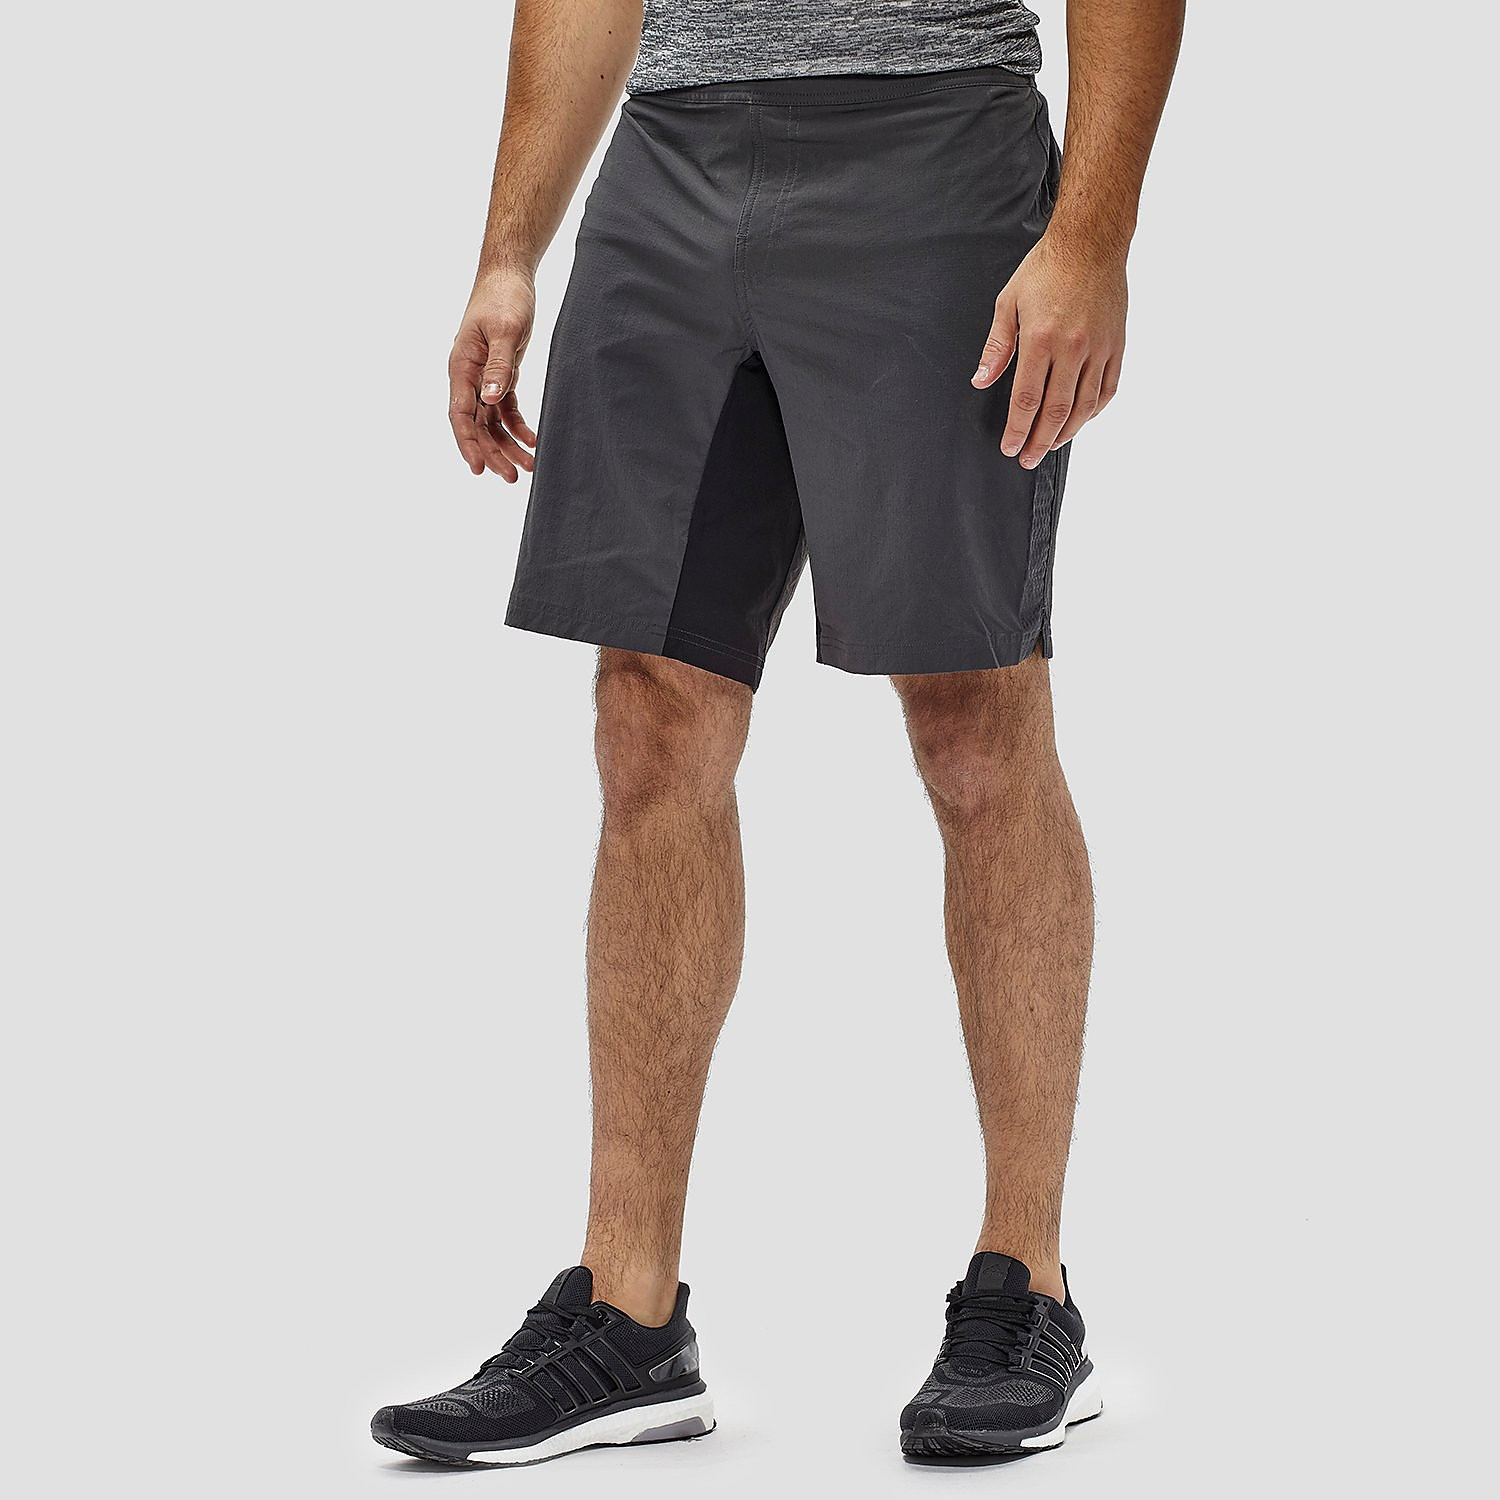 adidas A2G Two-In-One Men's Training Shorts